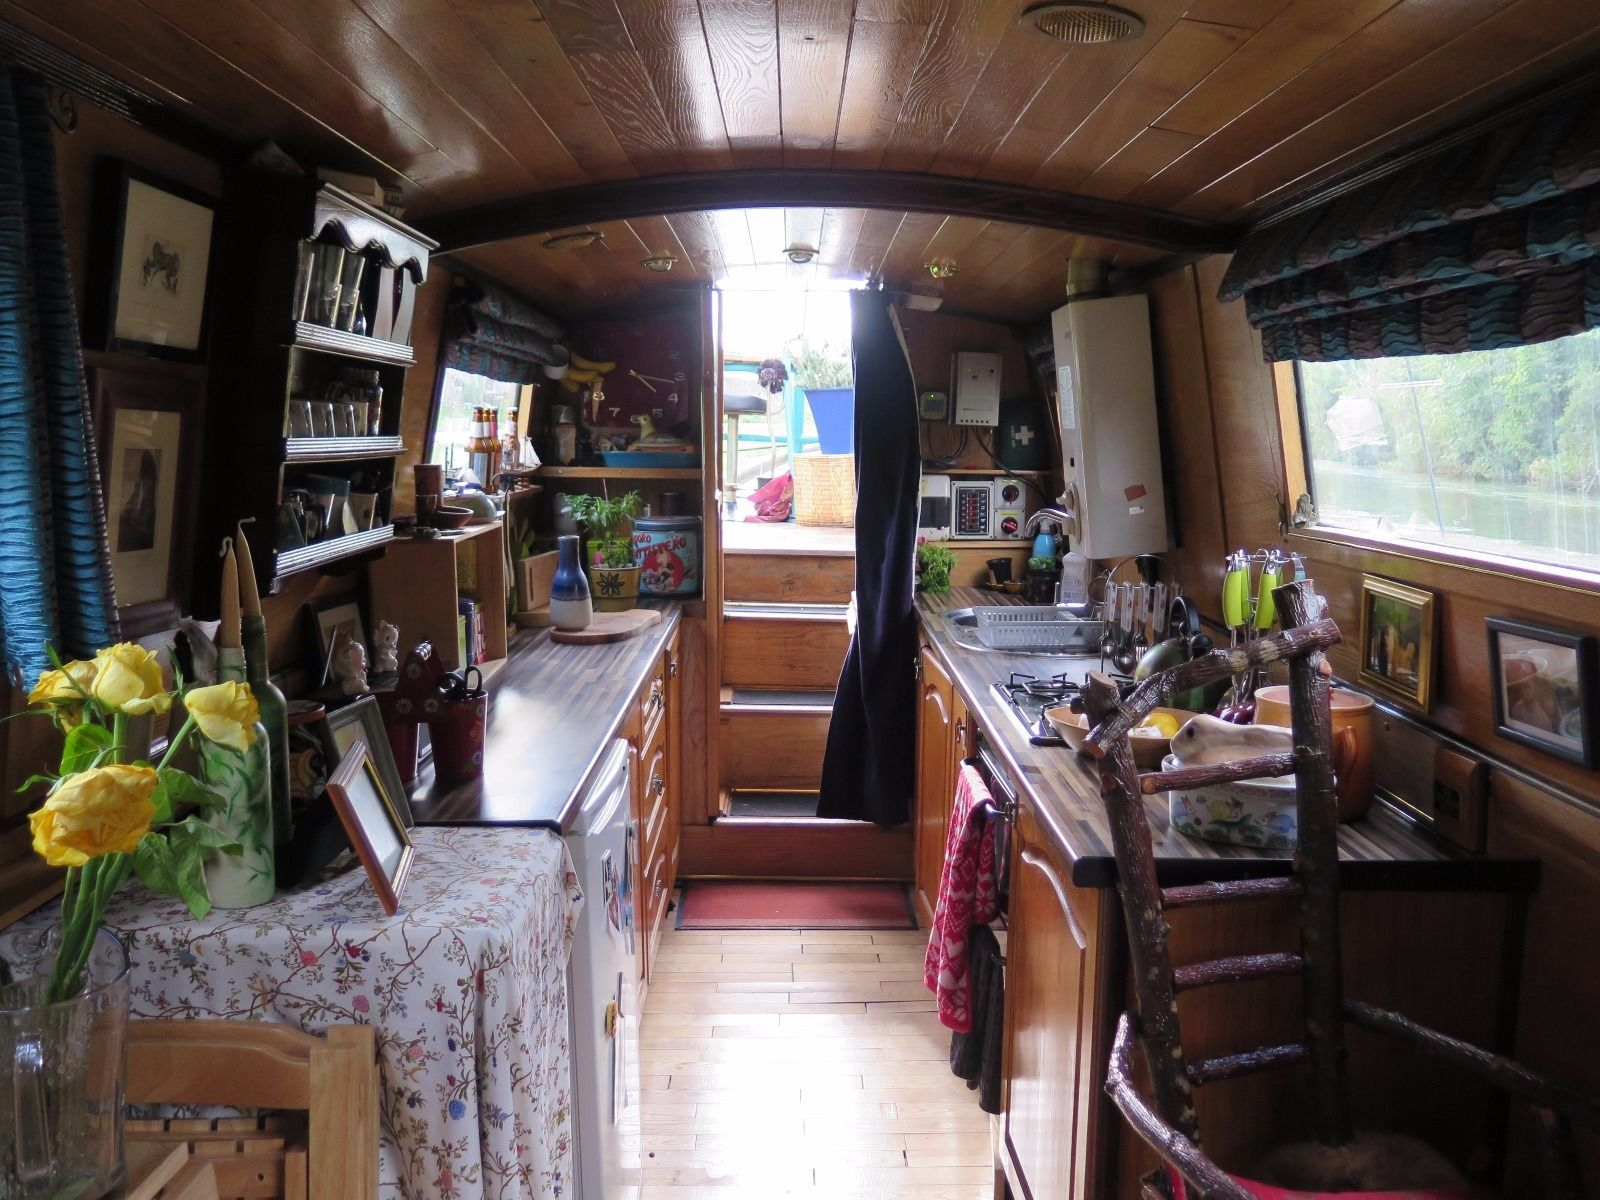 50ft narrowboat houseboat canal boat perfect liveaboard